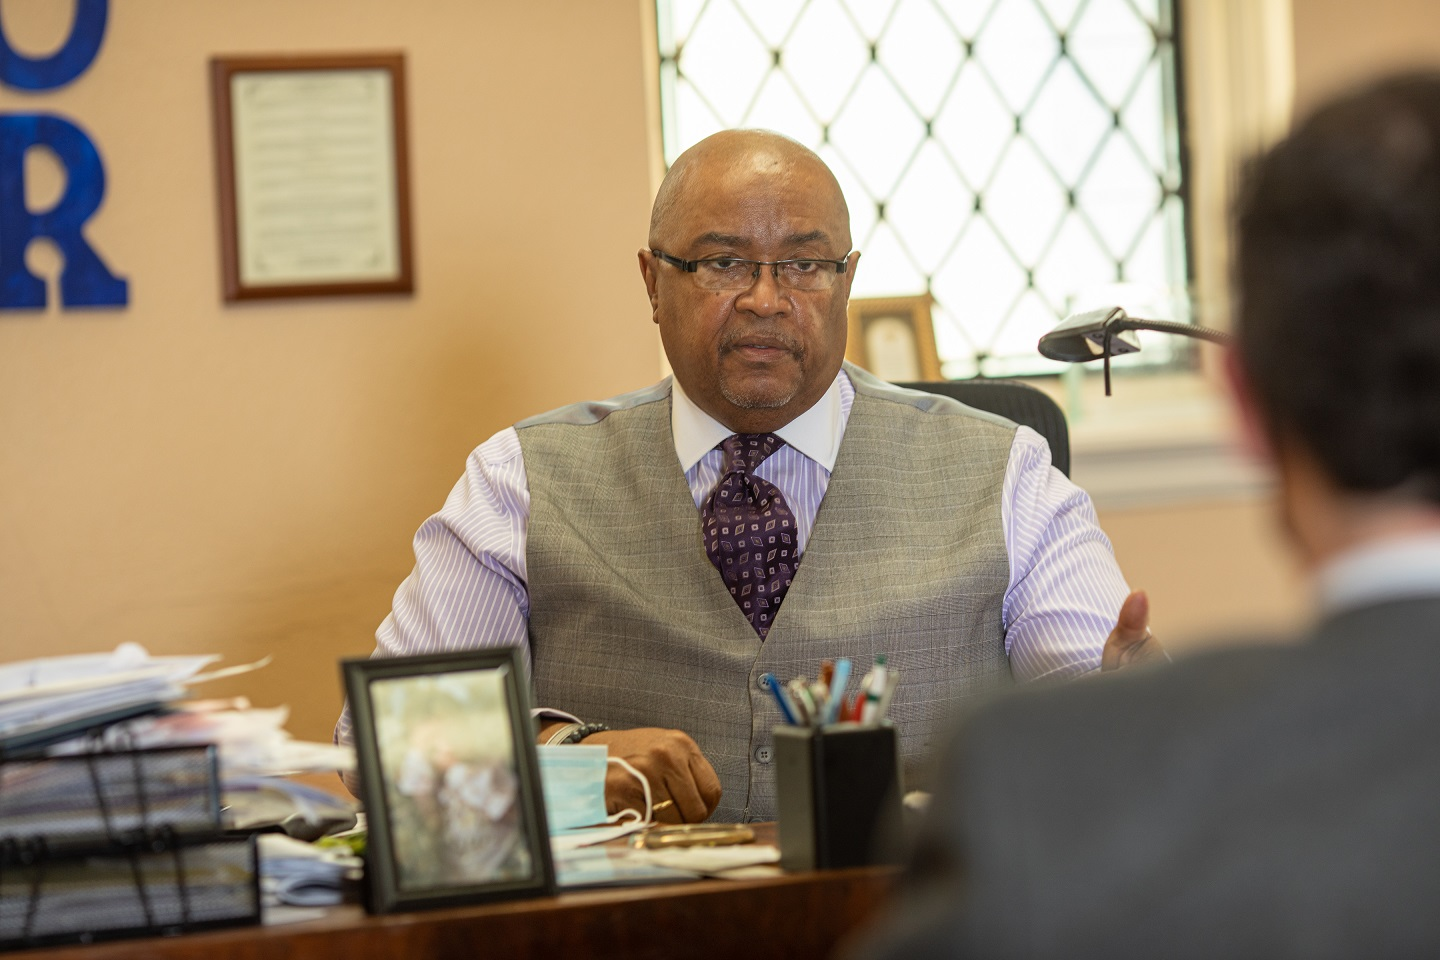 The Rev. Roland Forbes speaks during an interview at his office at Ebenezer Baptist Church in Lancaster on Friday, Feb. 5, 2021. (Photo: PhotOle Photography)